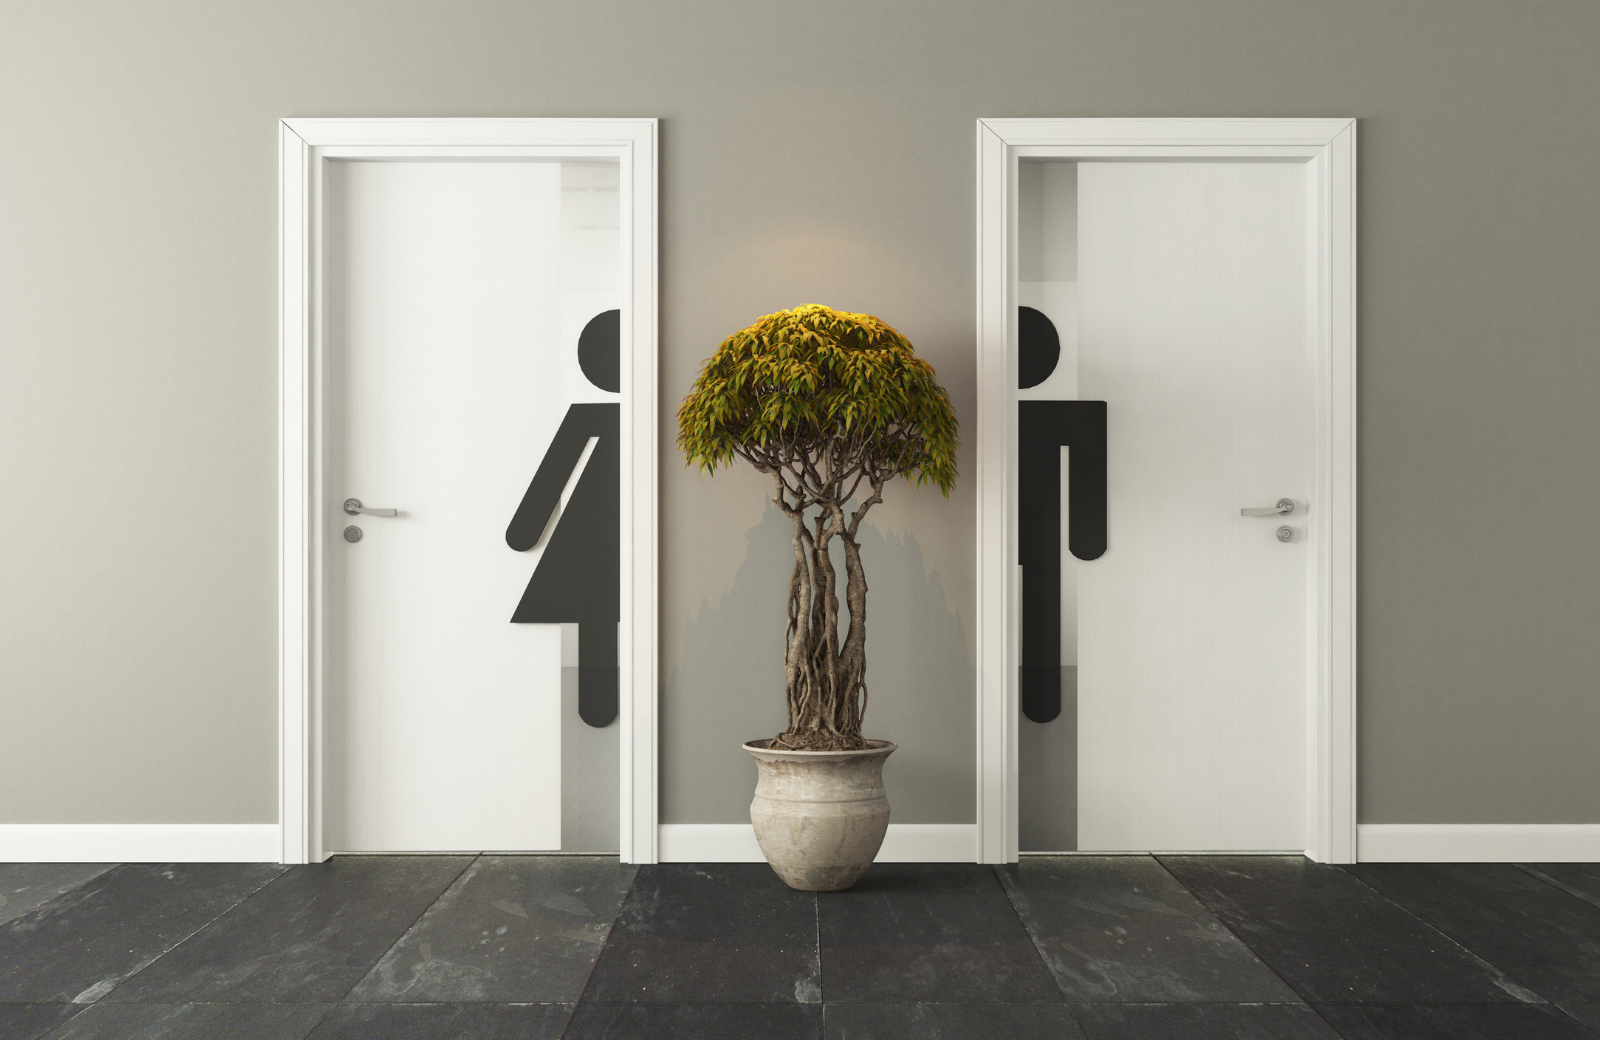 Architects and Designers: Upcoming clarification to planning guidance and building regulations on washrooms